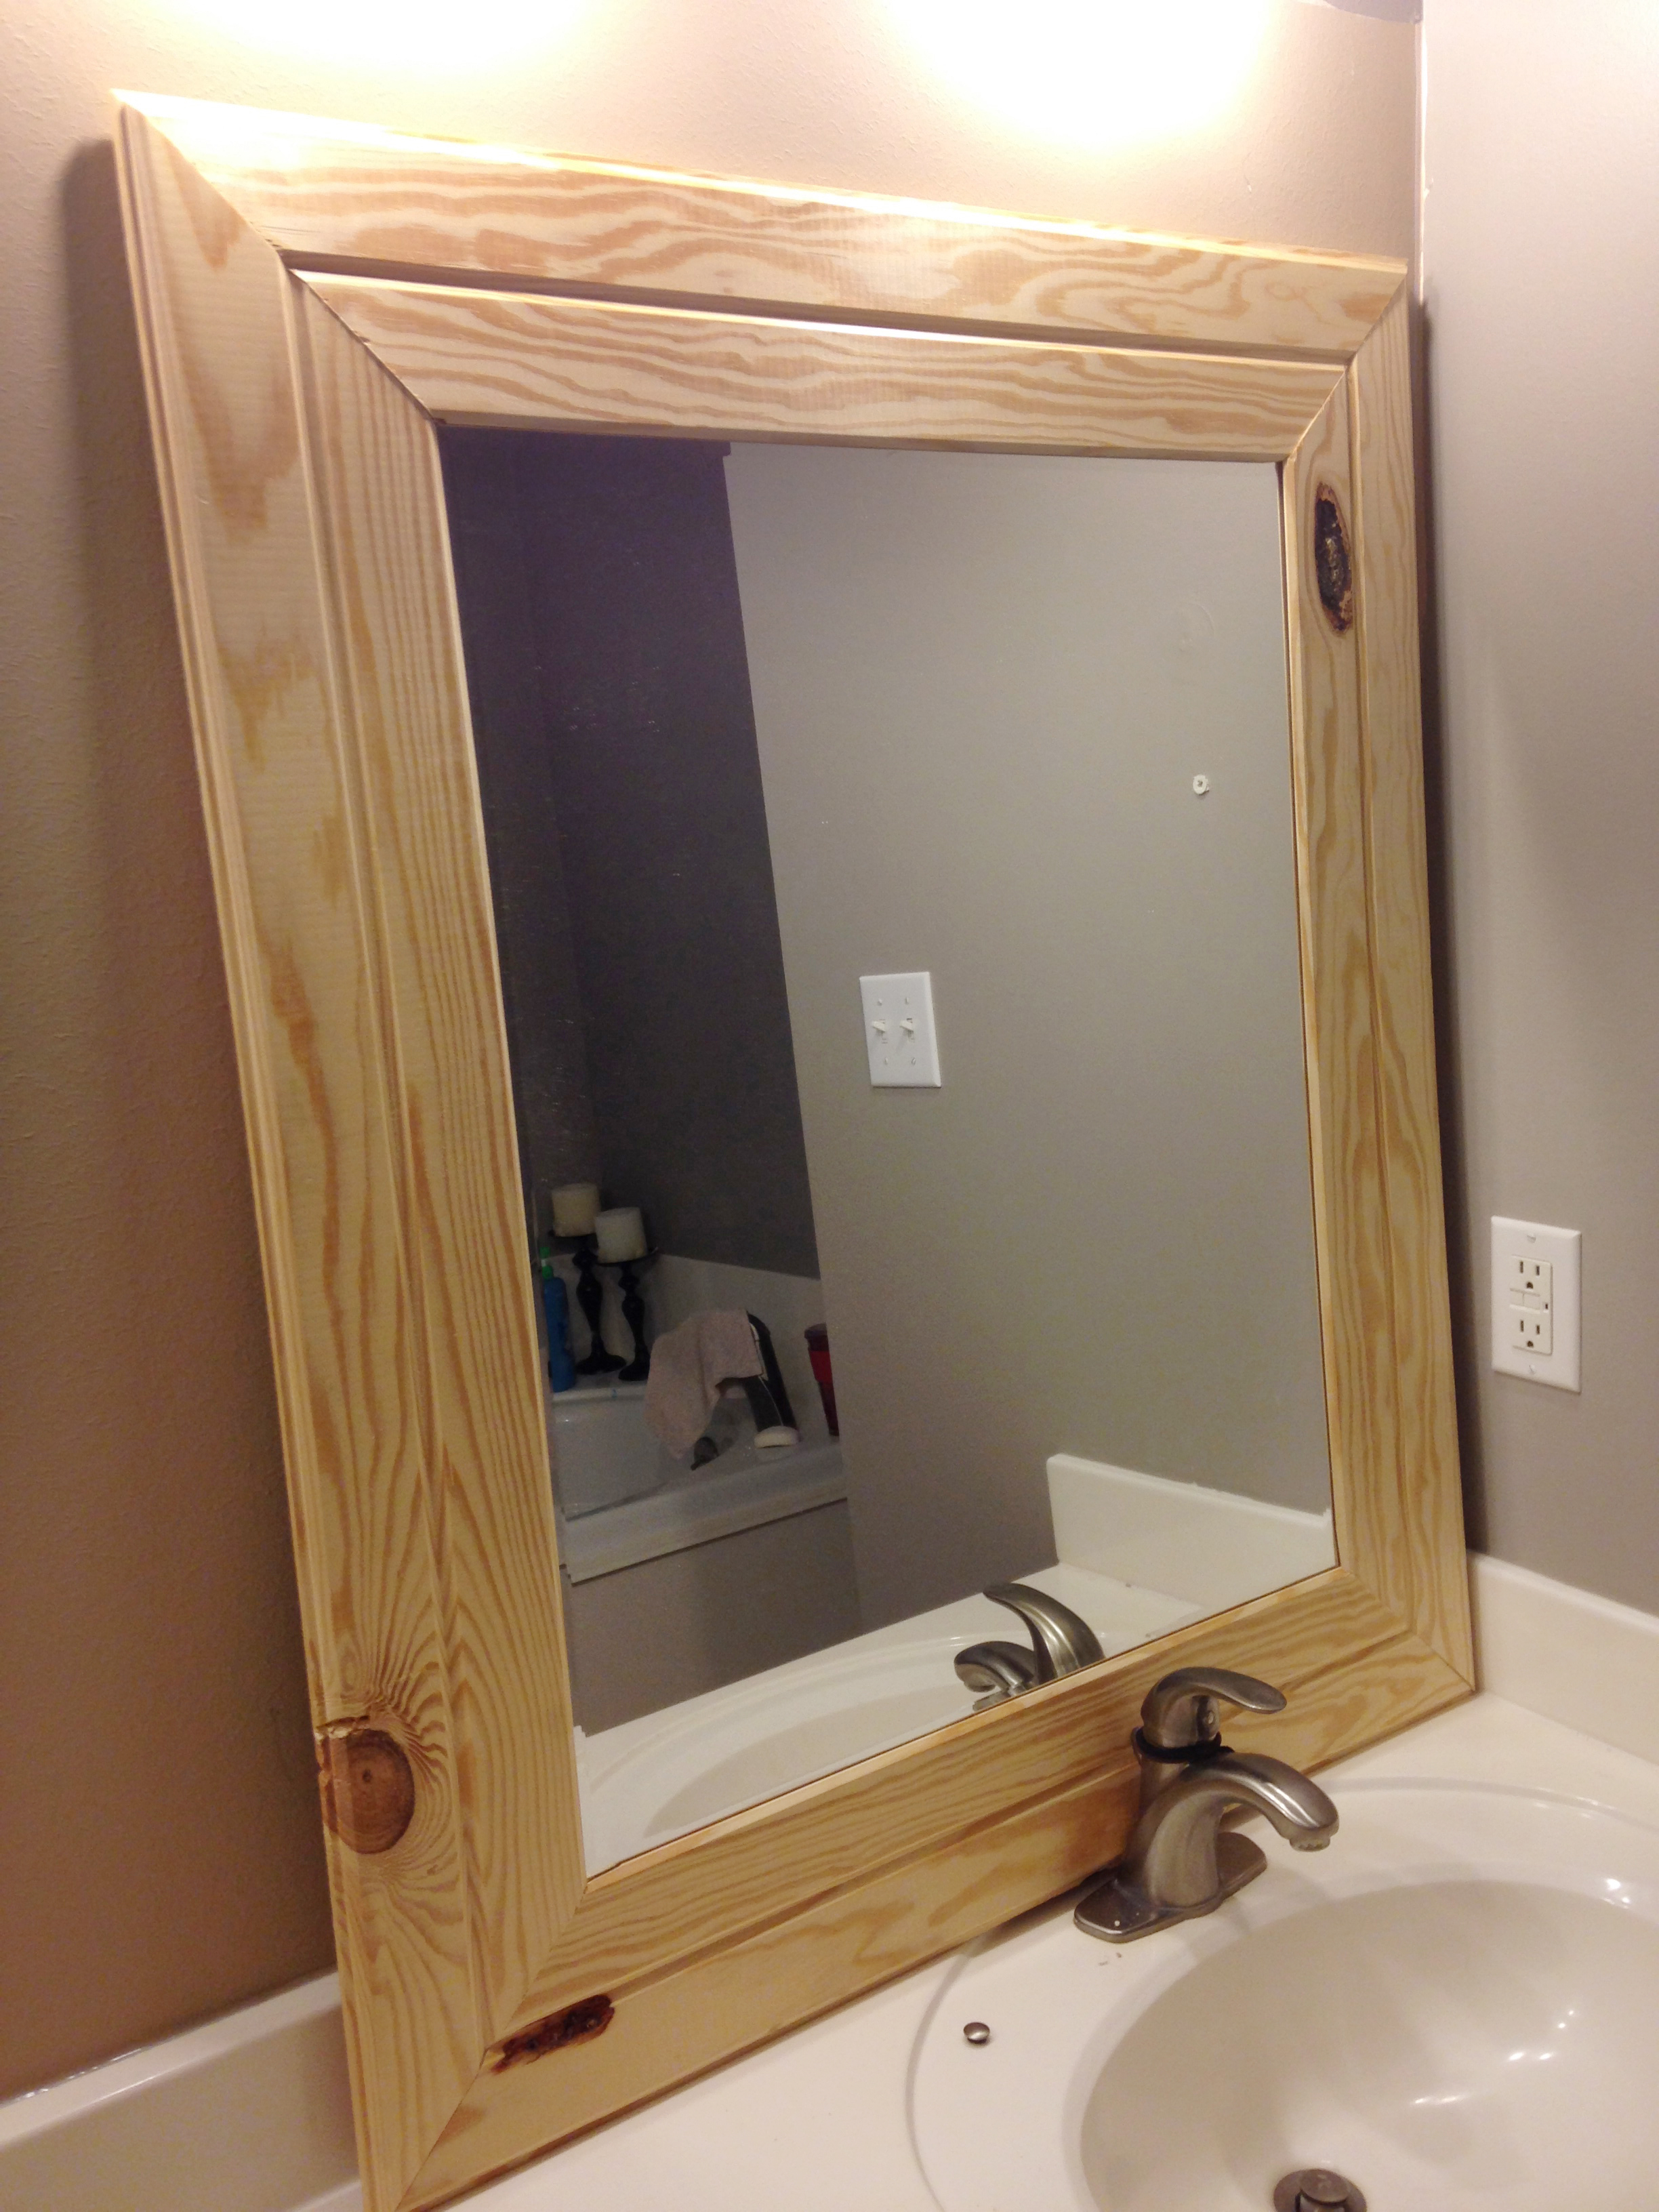 diy easy framed mirrors diystinctlymadecom